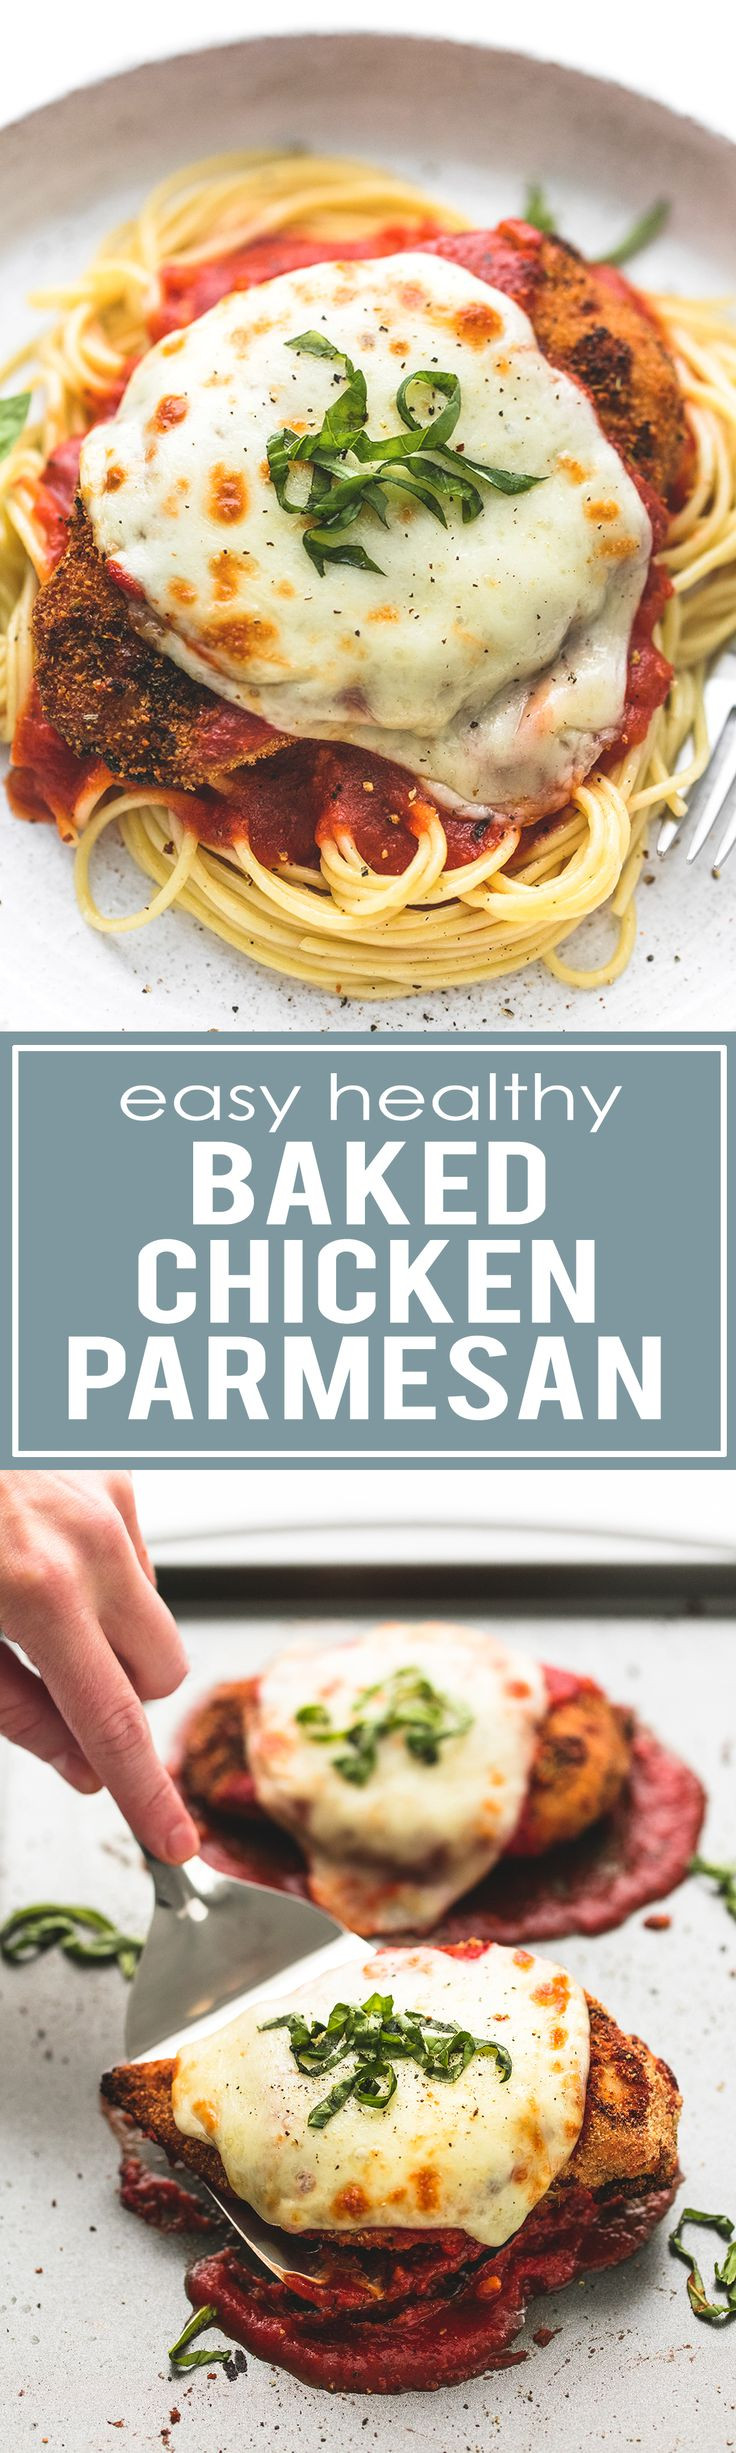 Healthy Baked Chicken Parmesan  Easy Healthy Baked Chicken Parmesan